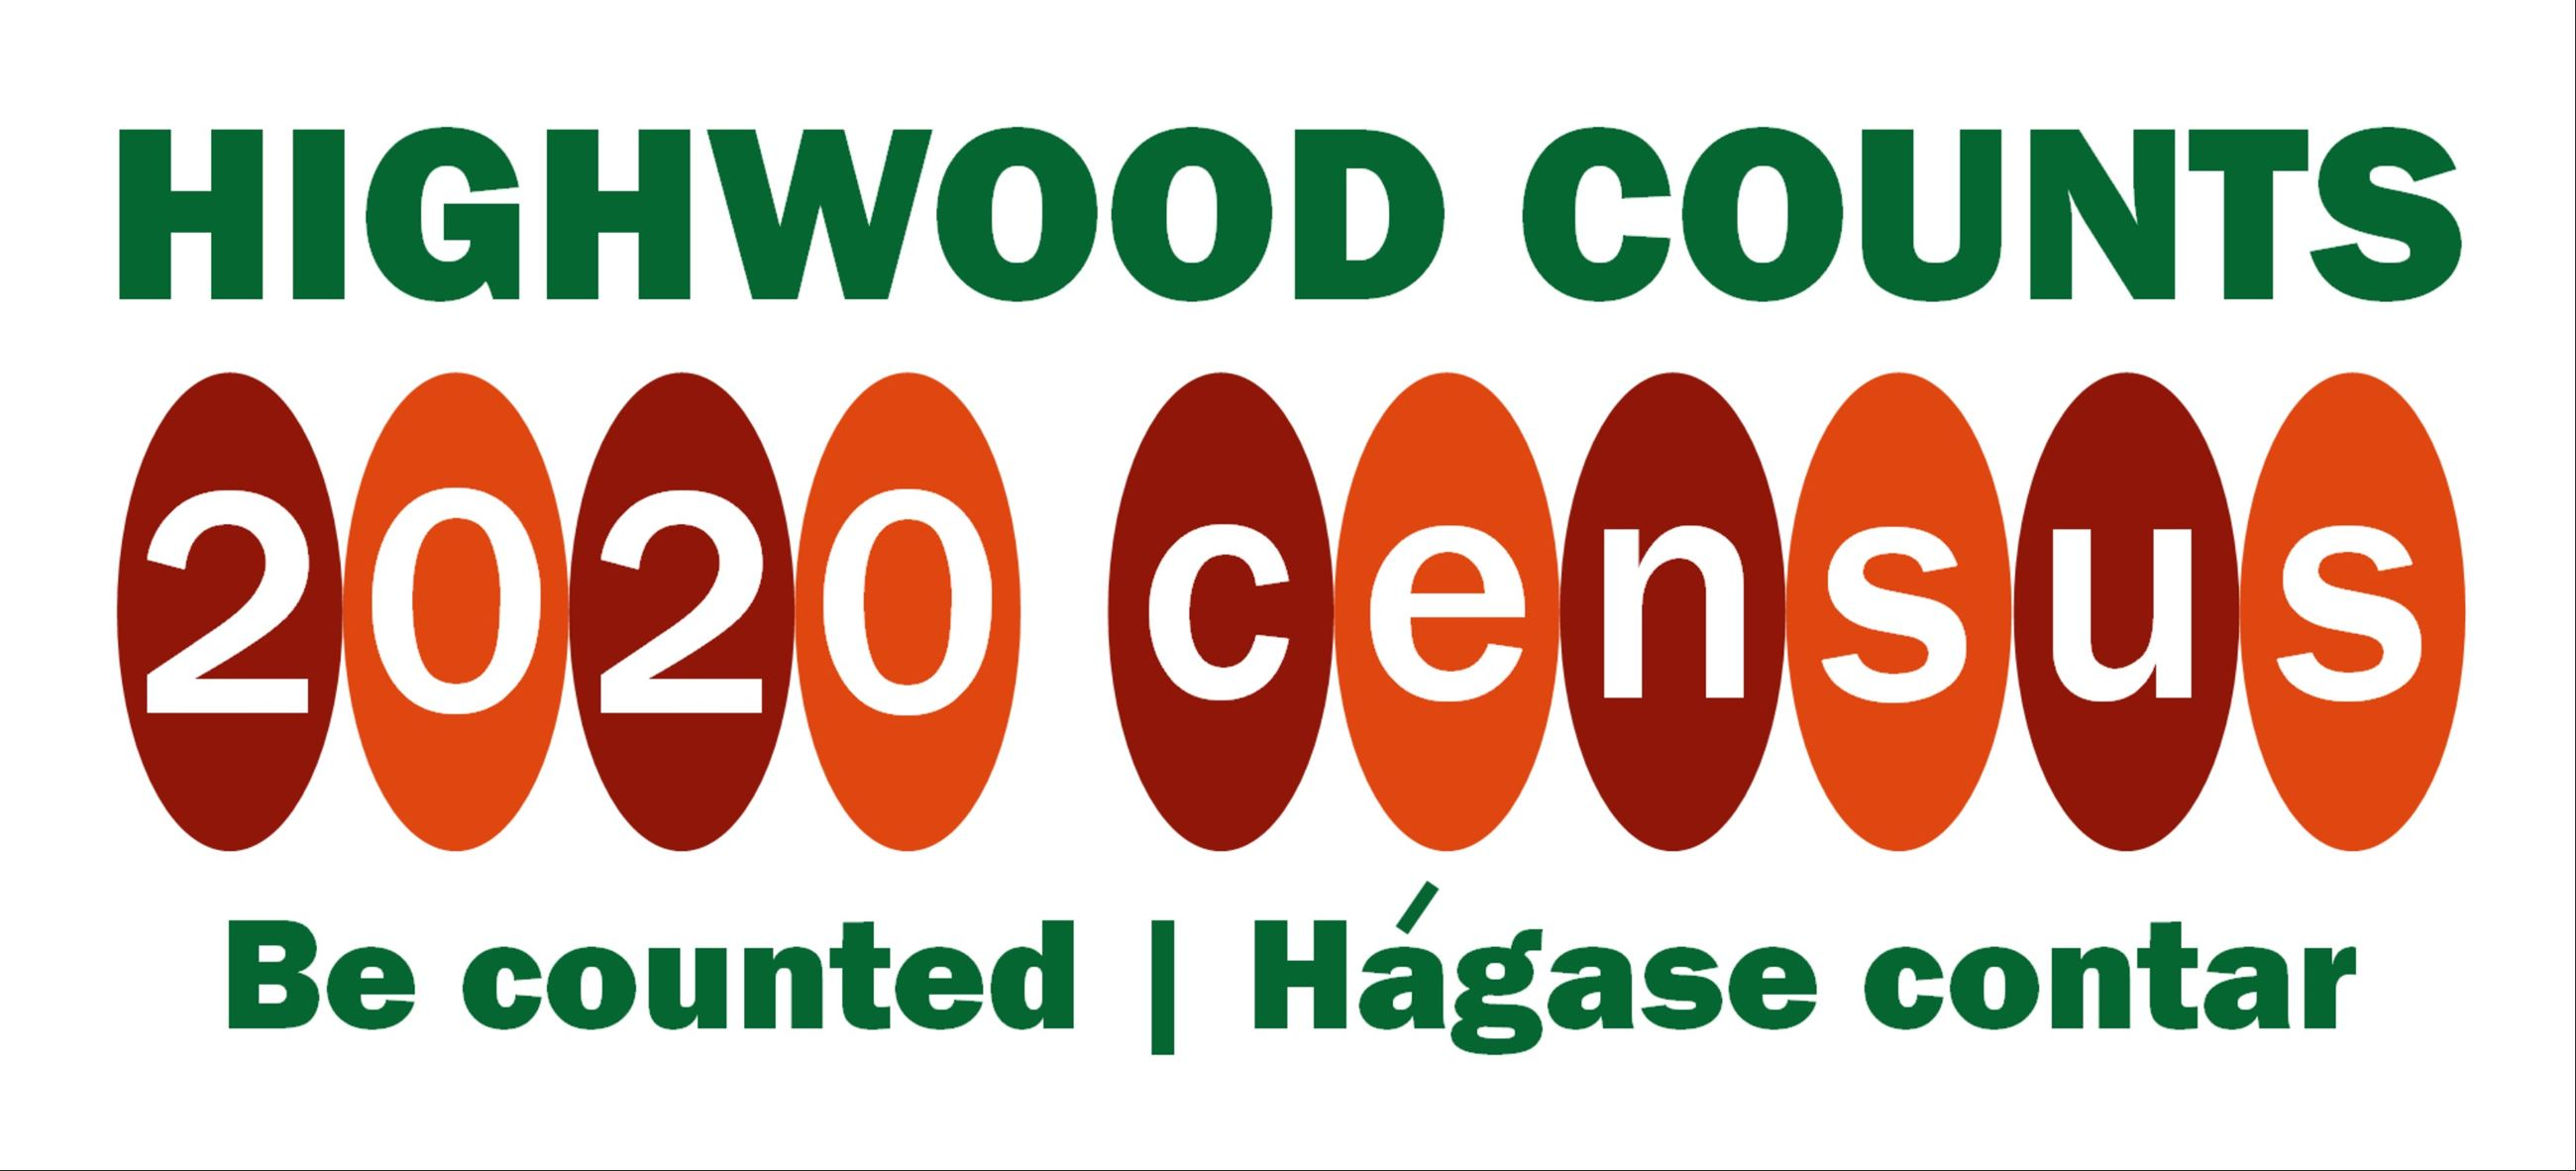 Highwood census 2020 logo Opens in new window